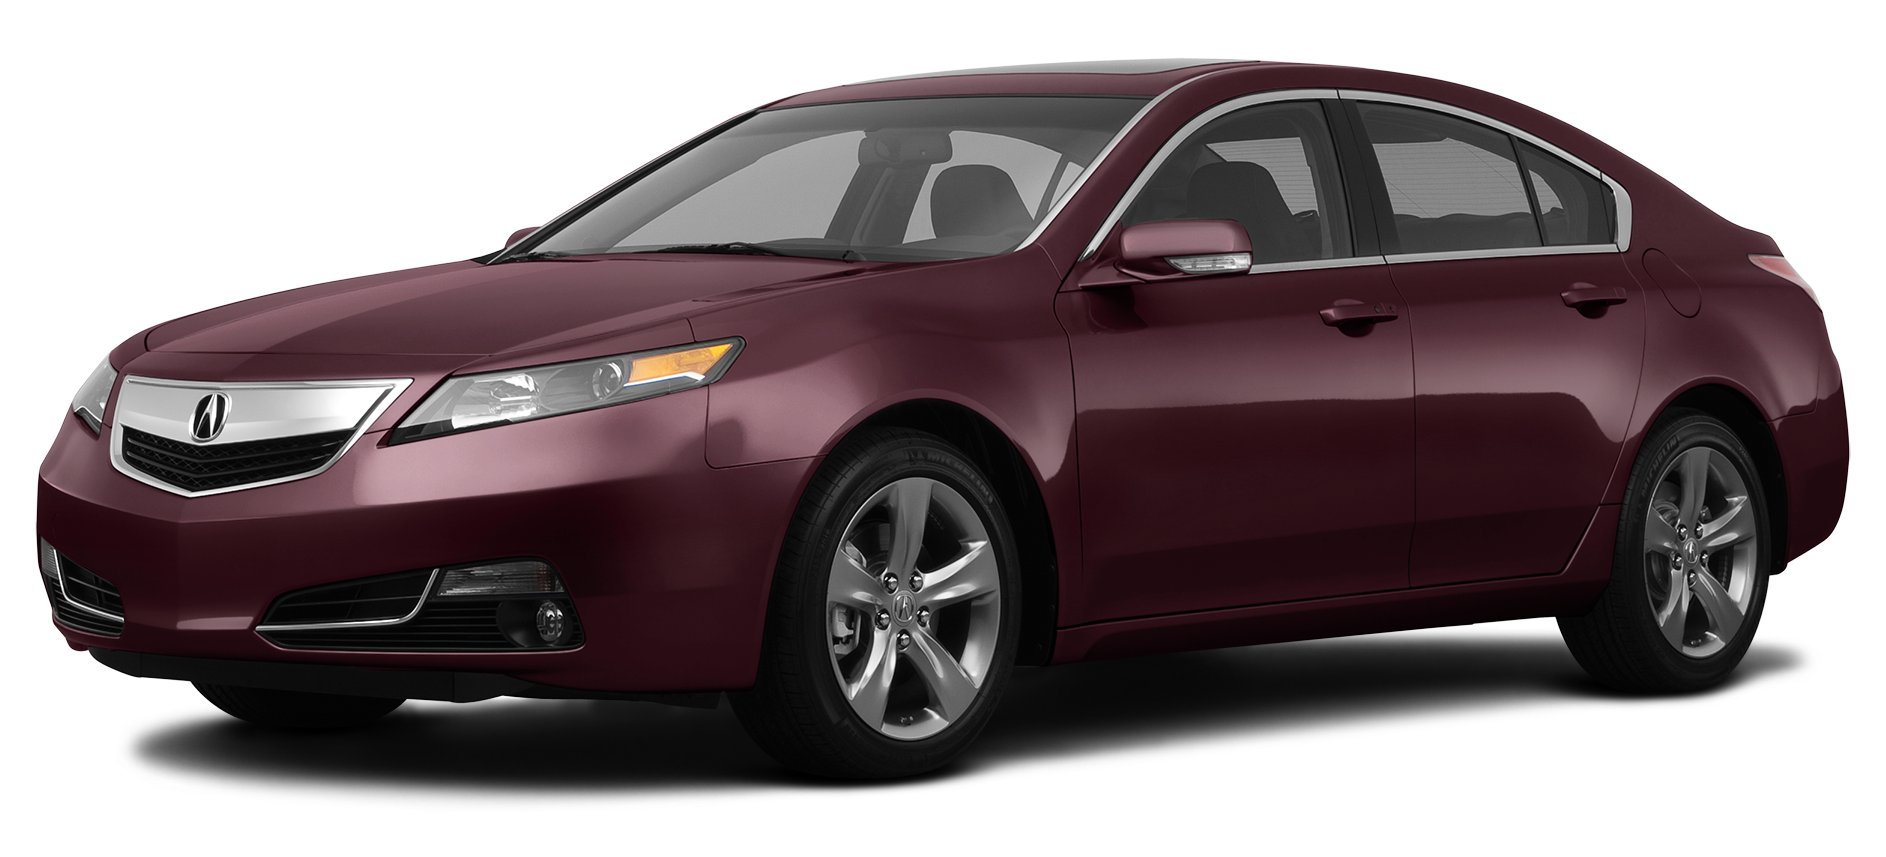 in mdx sale technology navigation saint suv paul mn used for technologynavigation acura